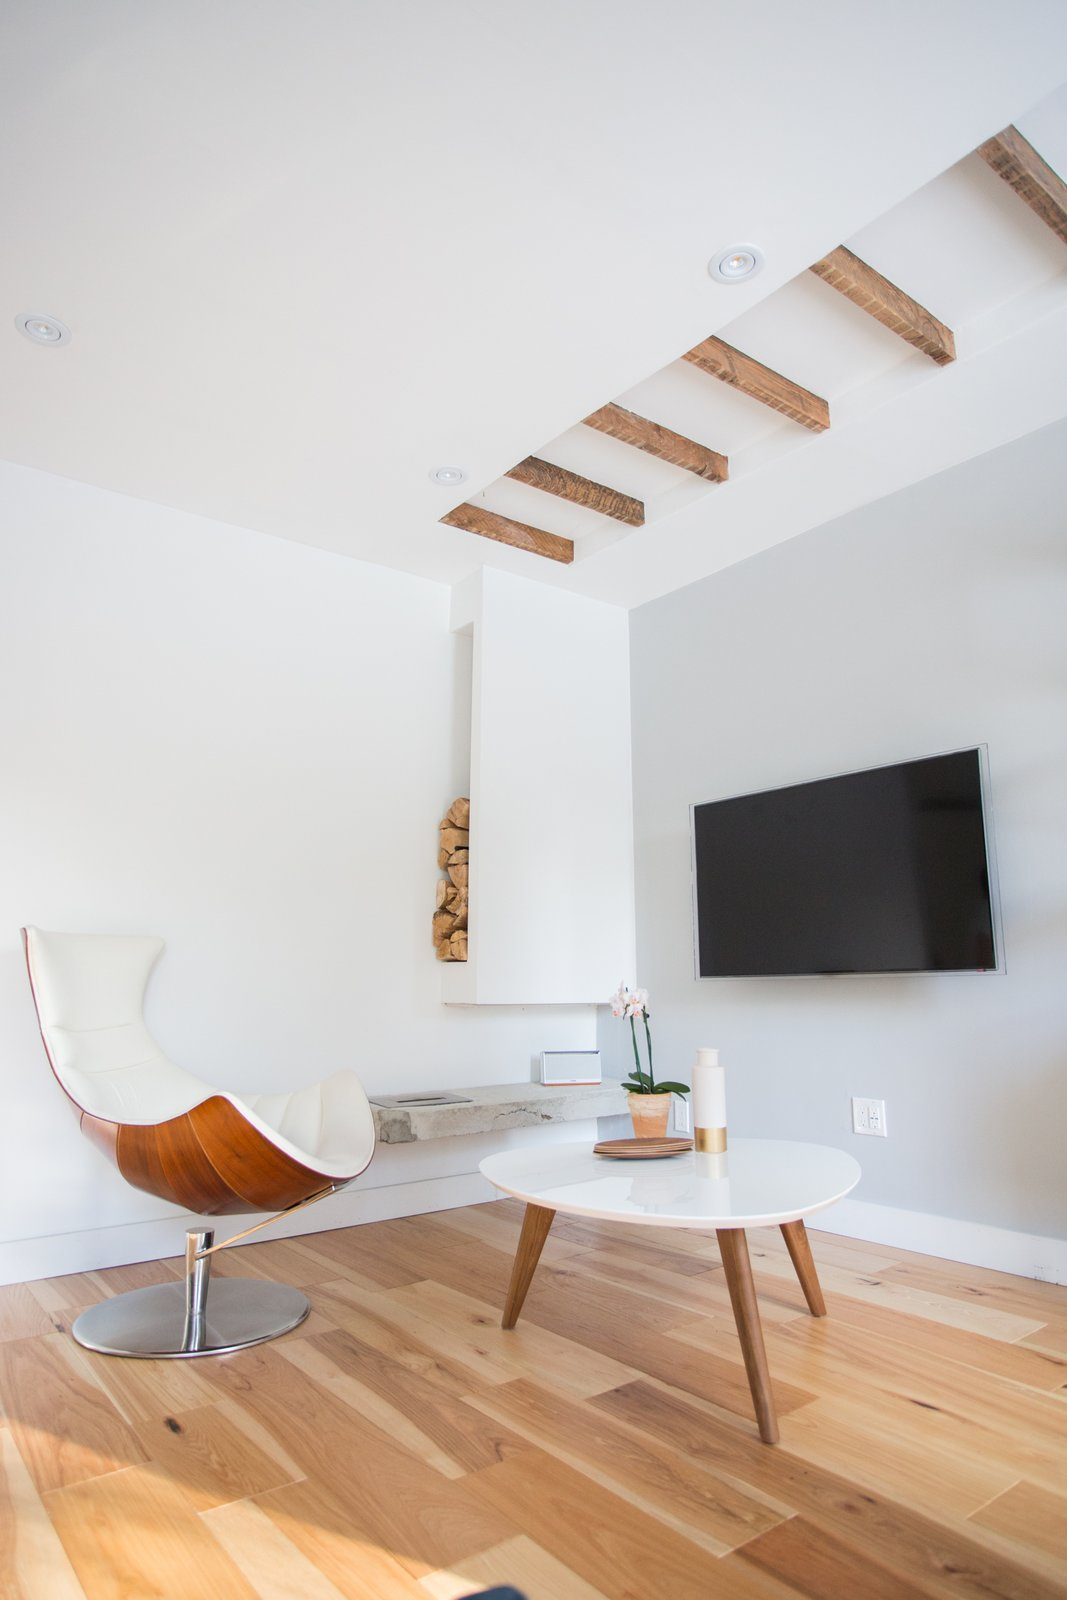 Living Room, Chair, Coffee Tables, and Medium Hardwood Floor In lieu of a fireplace, the pair opted for an exposed ethanol burner mounted on exposed concrete (the wood is just decor).  40+ Homes With Exposed Beams: Rustic to Modern by Luke Hopping from A Toronto Couple Renovates Their 675-Square-Foot Dream Home